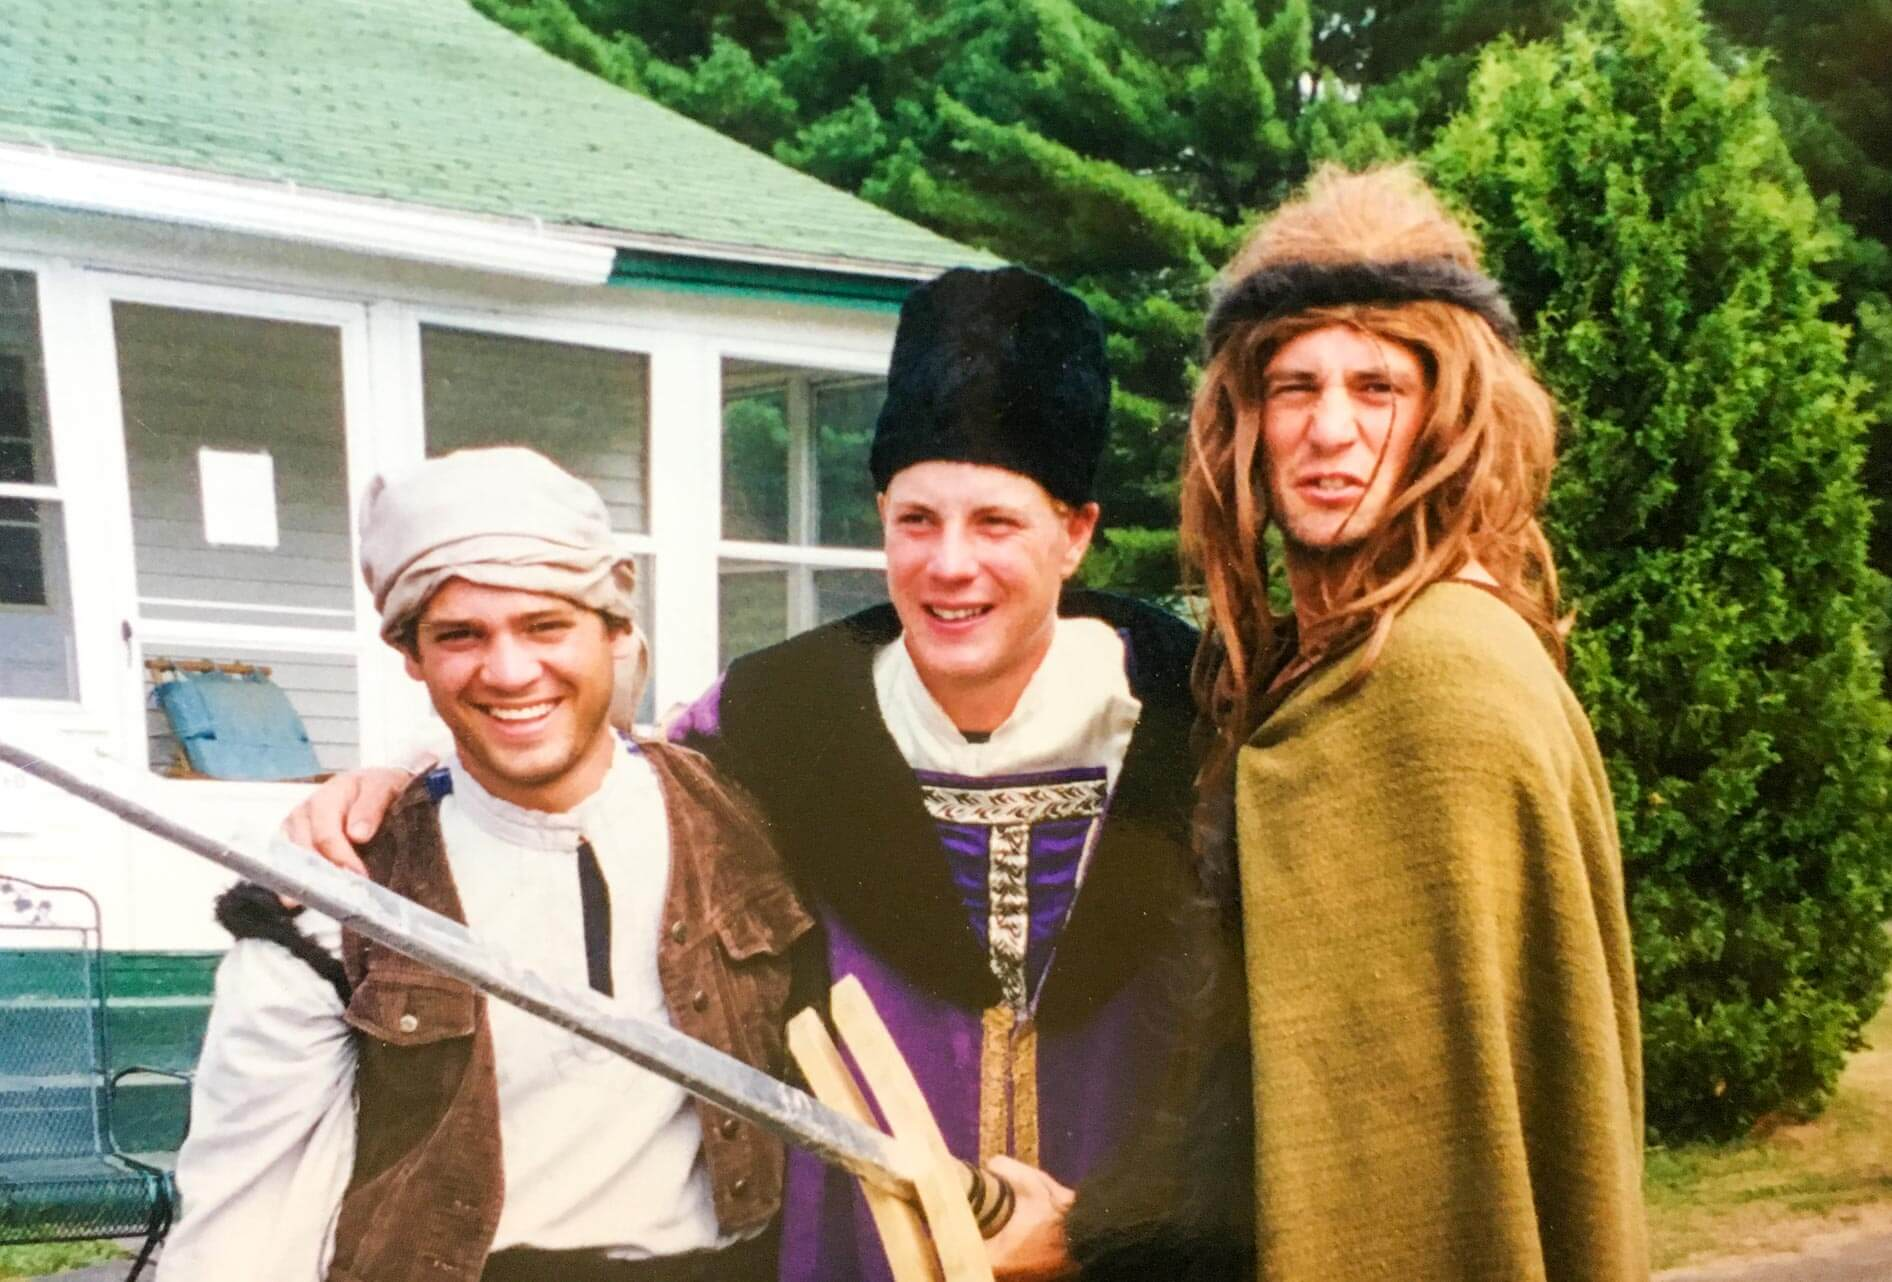 Throwback photo of campers in costumes